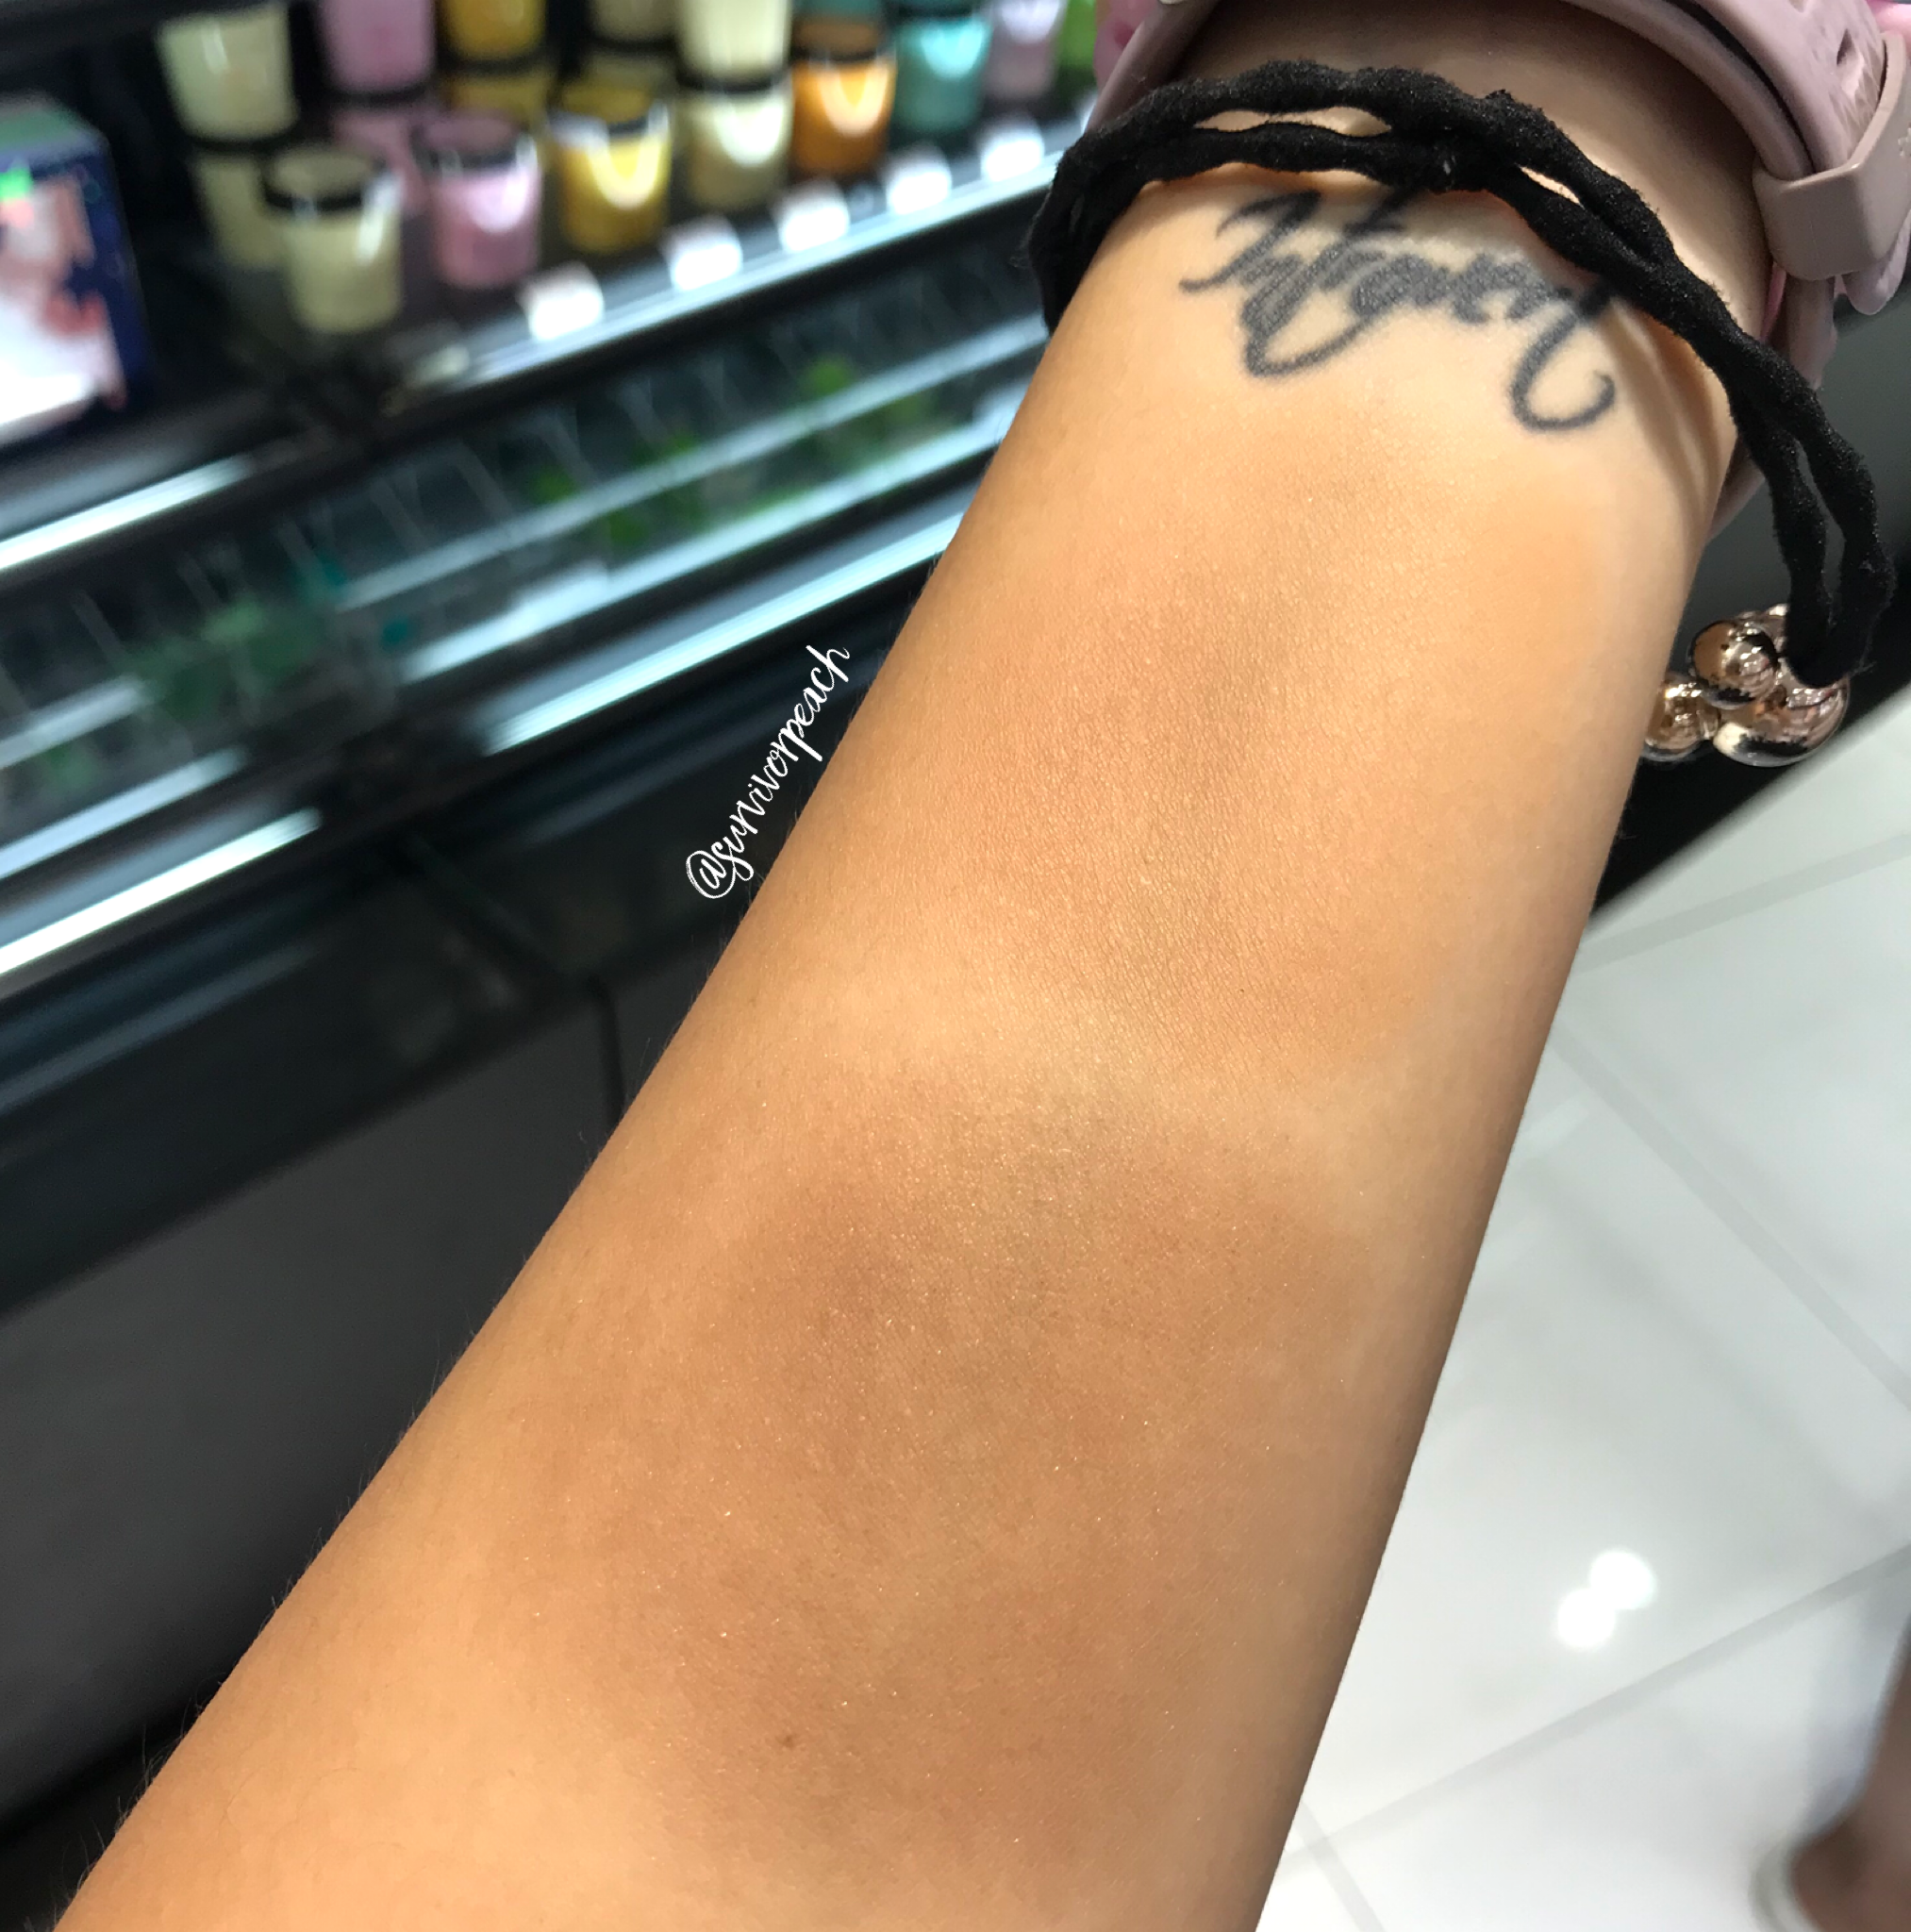 Blended Swatches of the Fenty Beauty Pro Filt'r Instant Retouch Setting Powder -Nutmeg, Honey